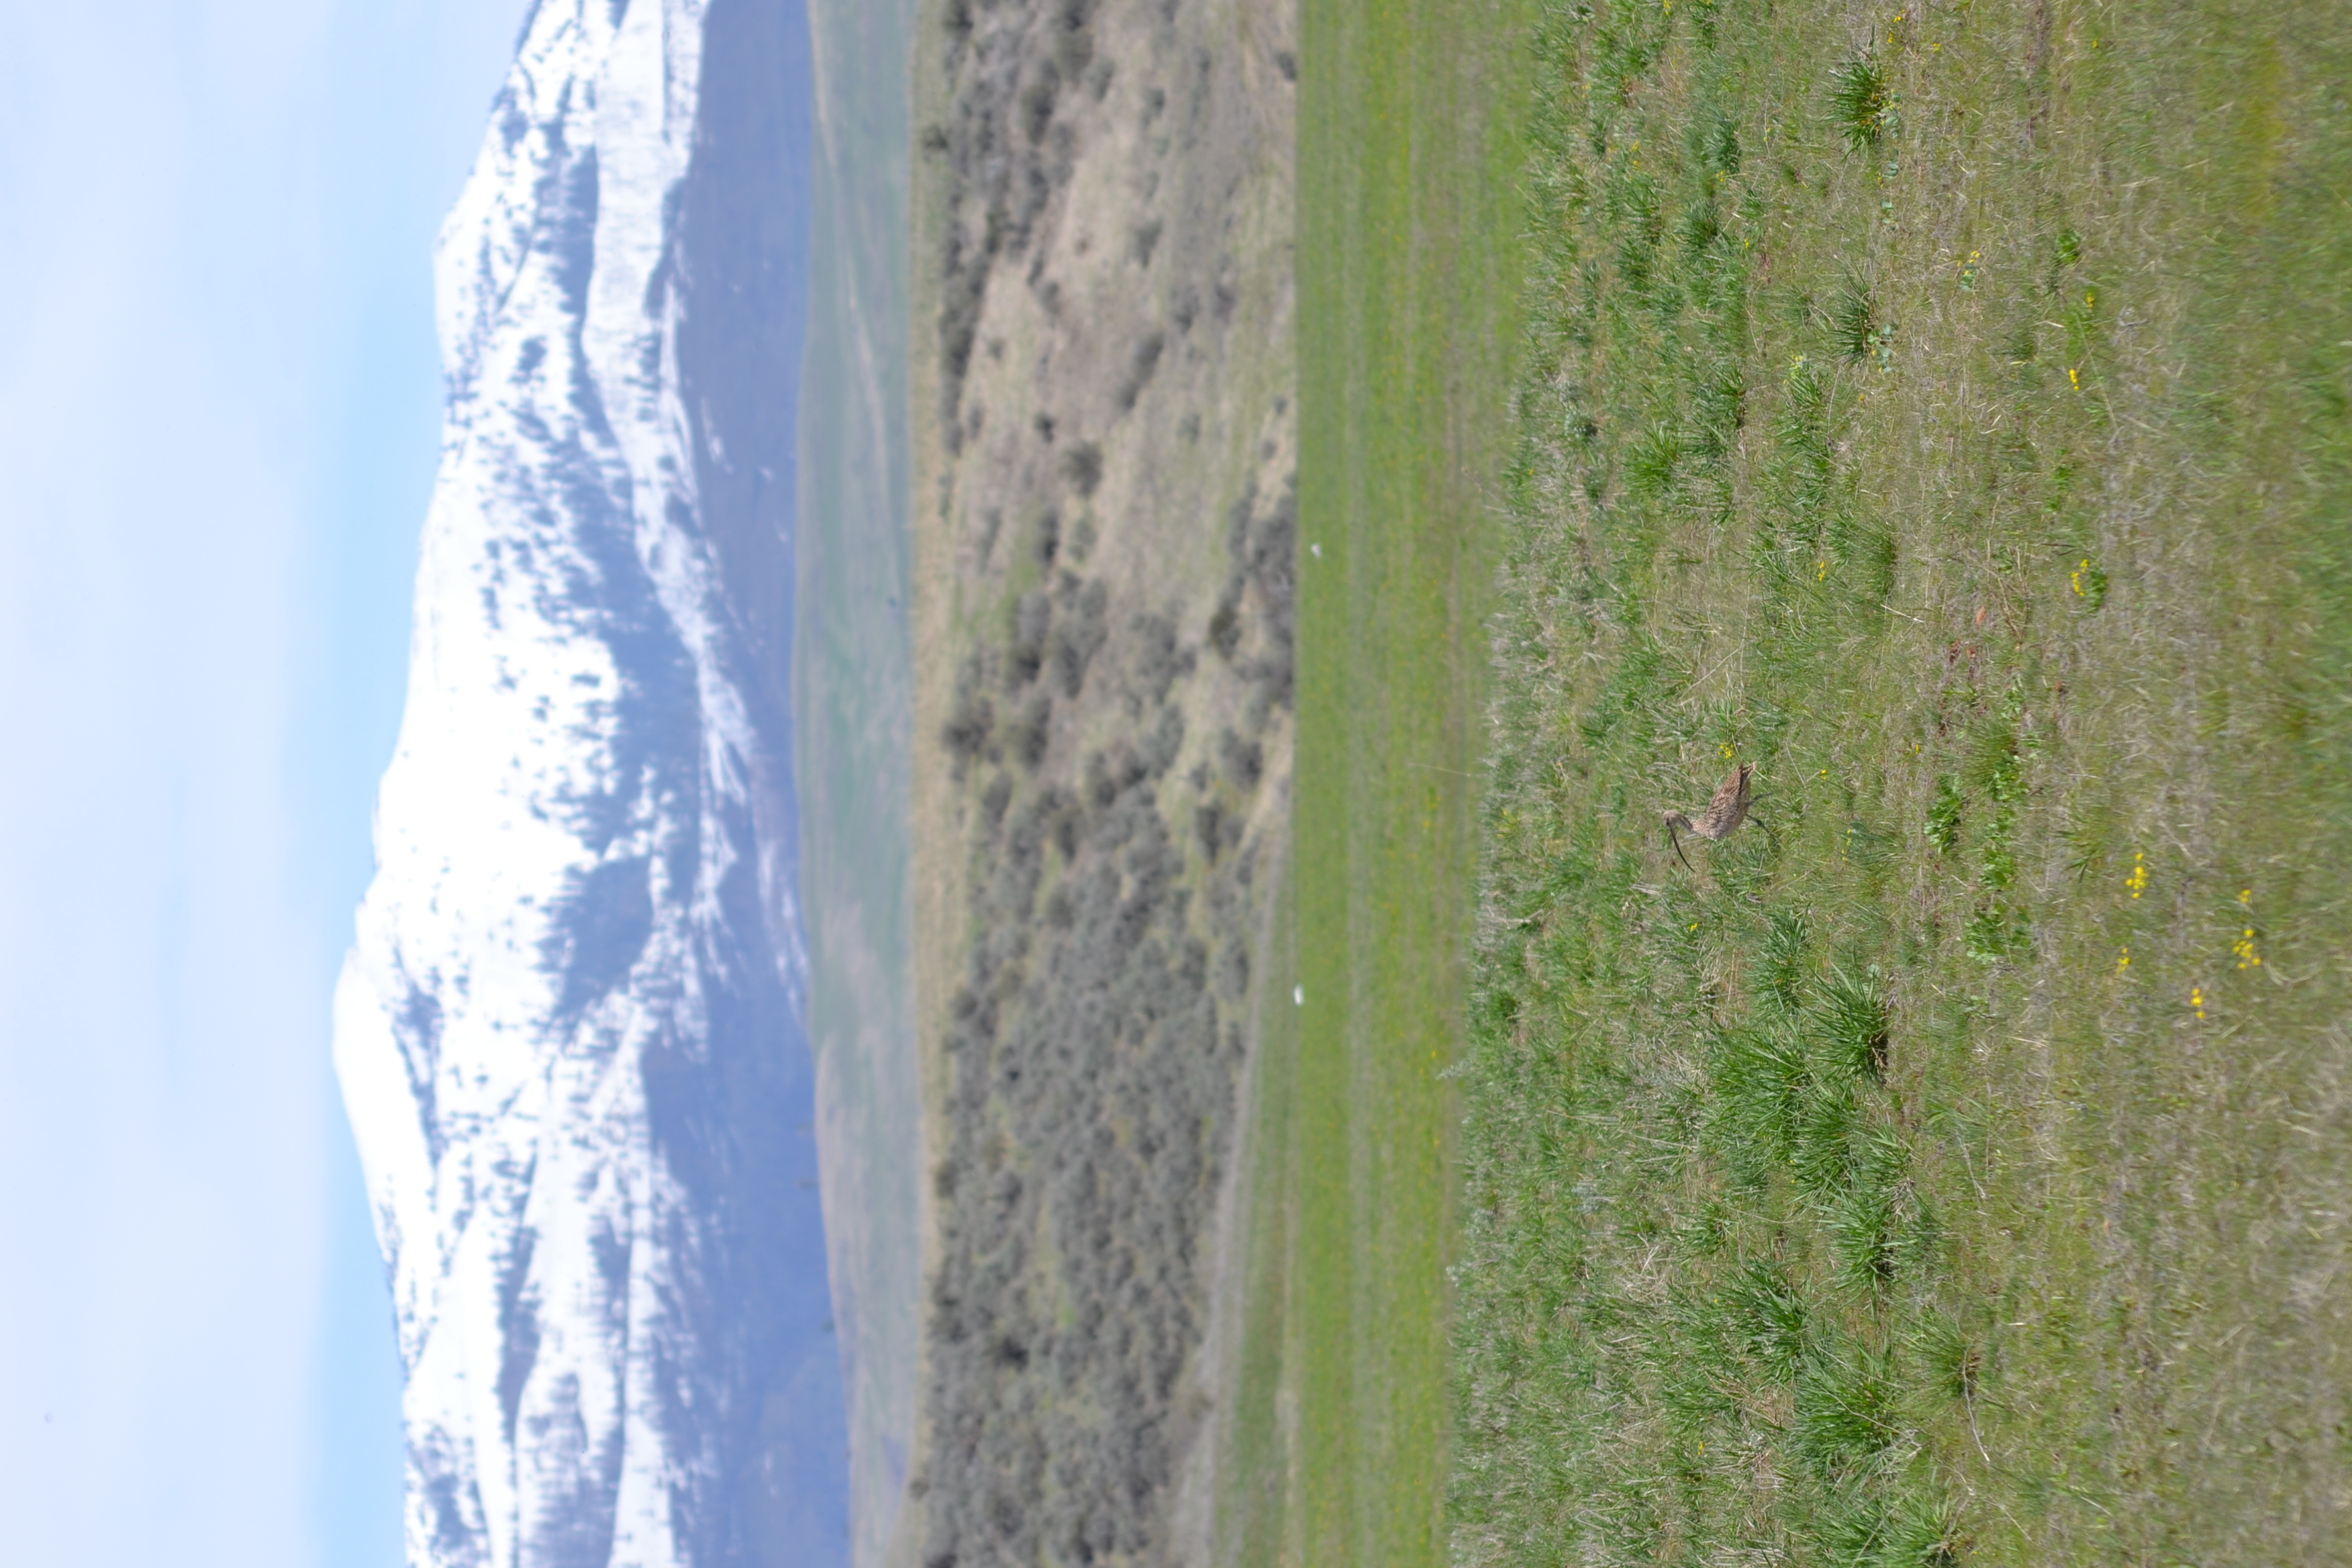 a curlew stands in a grassy field with sagebrush in the background and snow-covered mountains in the distance